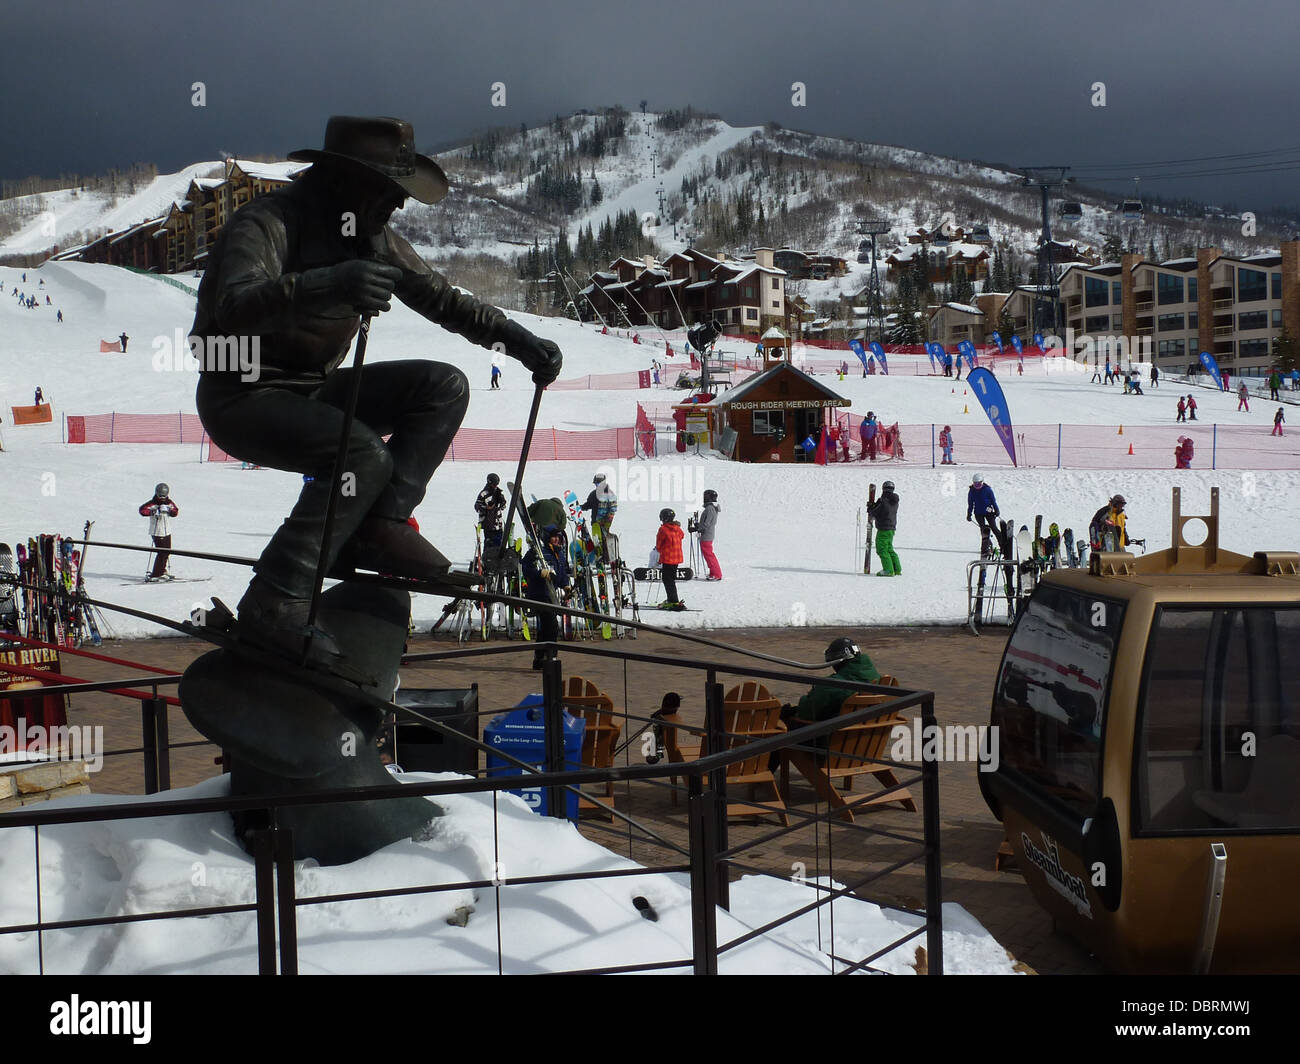 Buddy Werner statue at the base of Steamboat Springs Ski resort, USA - Stock Image